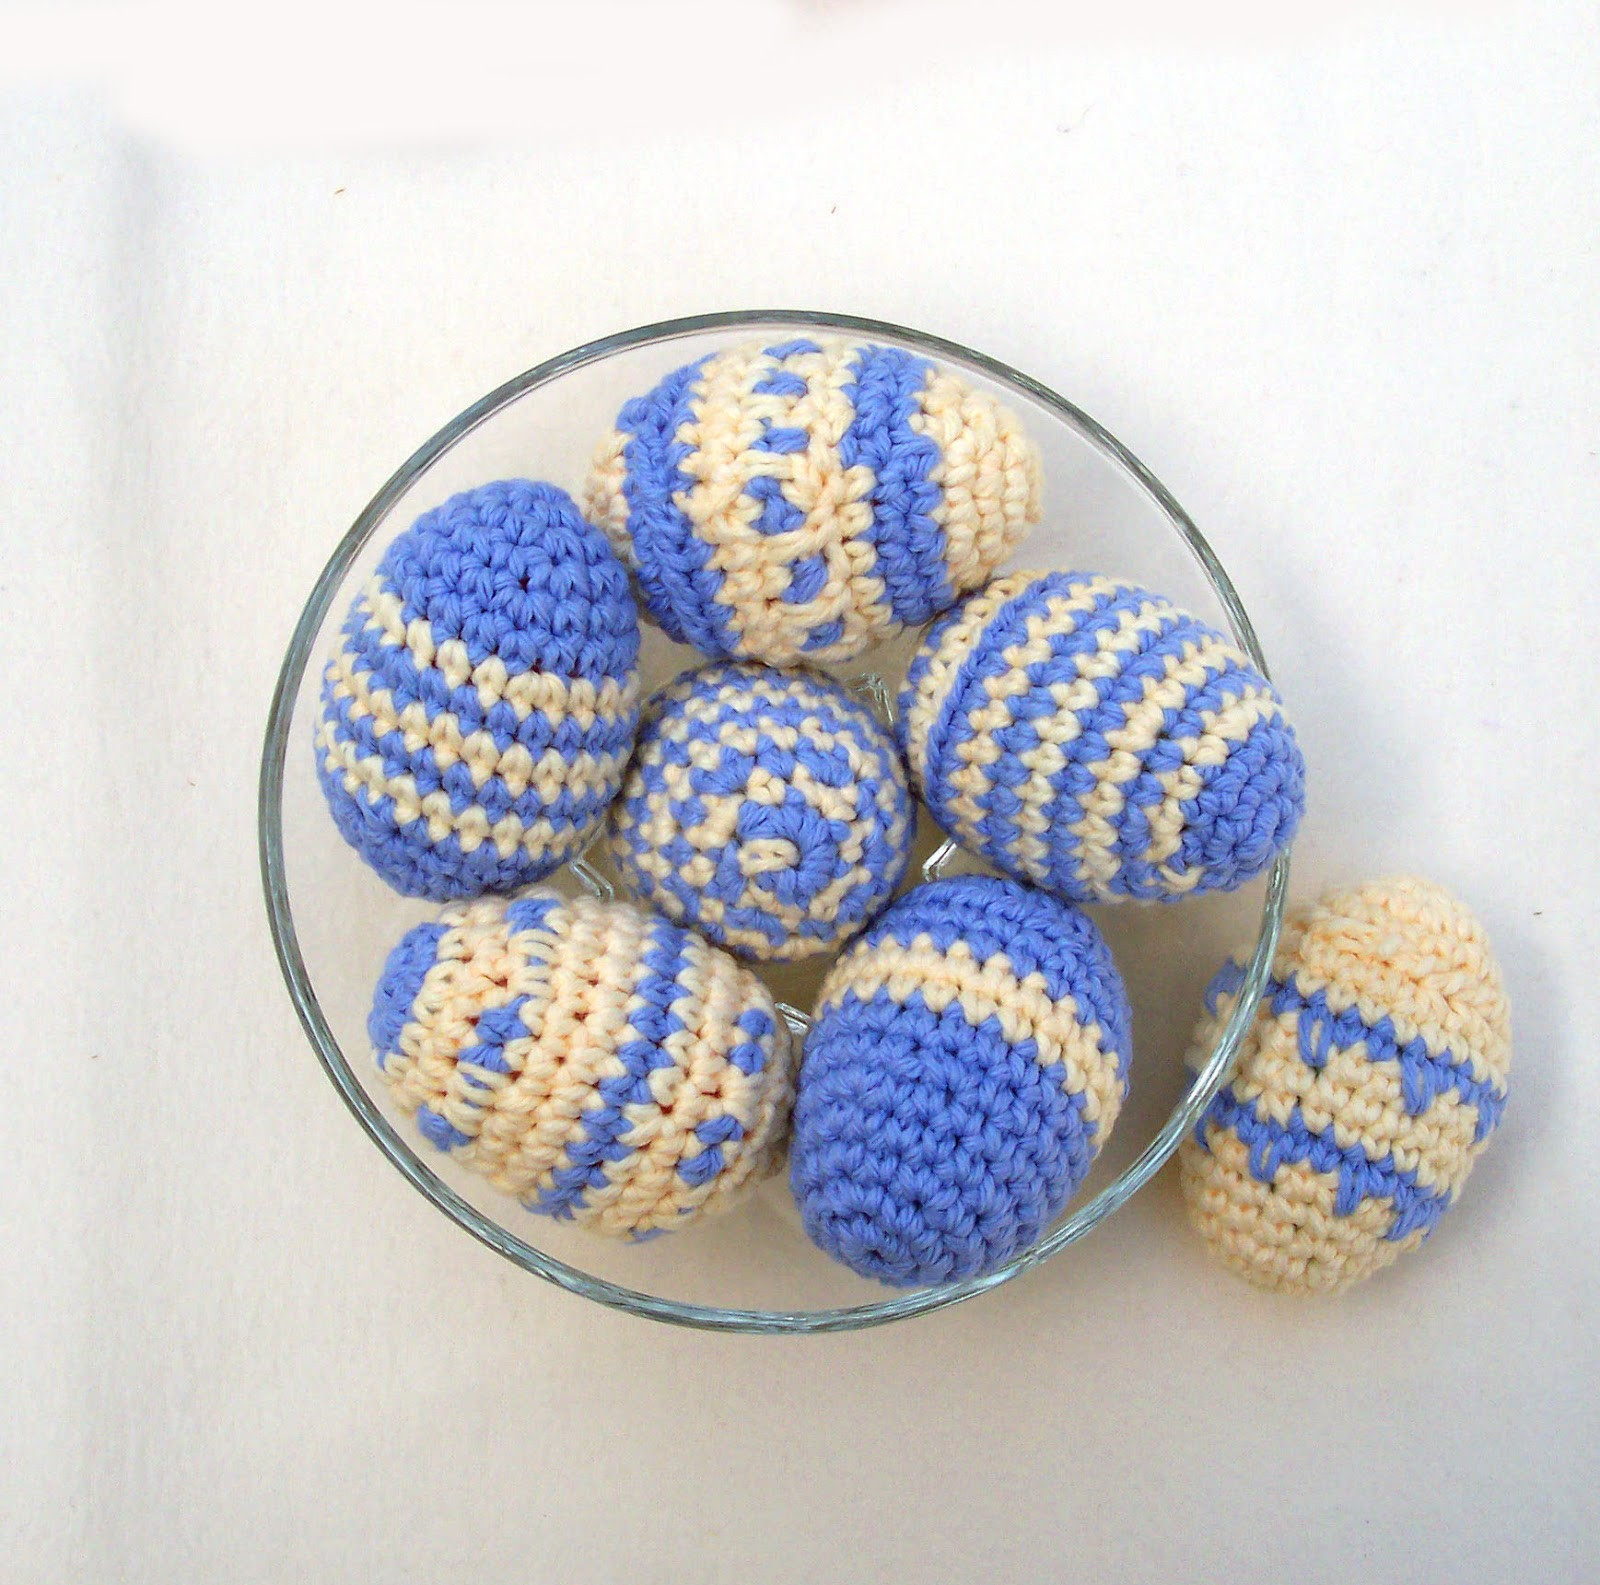 Crochet Easter Eggs Lovely Delights Gems Crocheted Easter Eggs Of Incredible 43 Ideas Crochet Easter Eggs